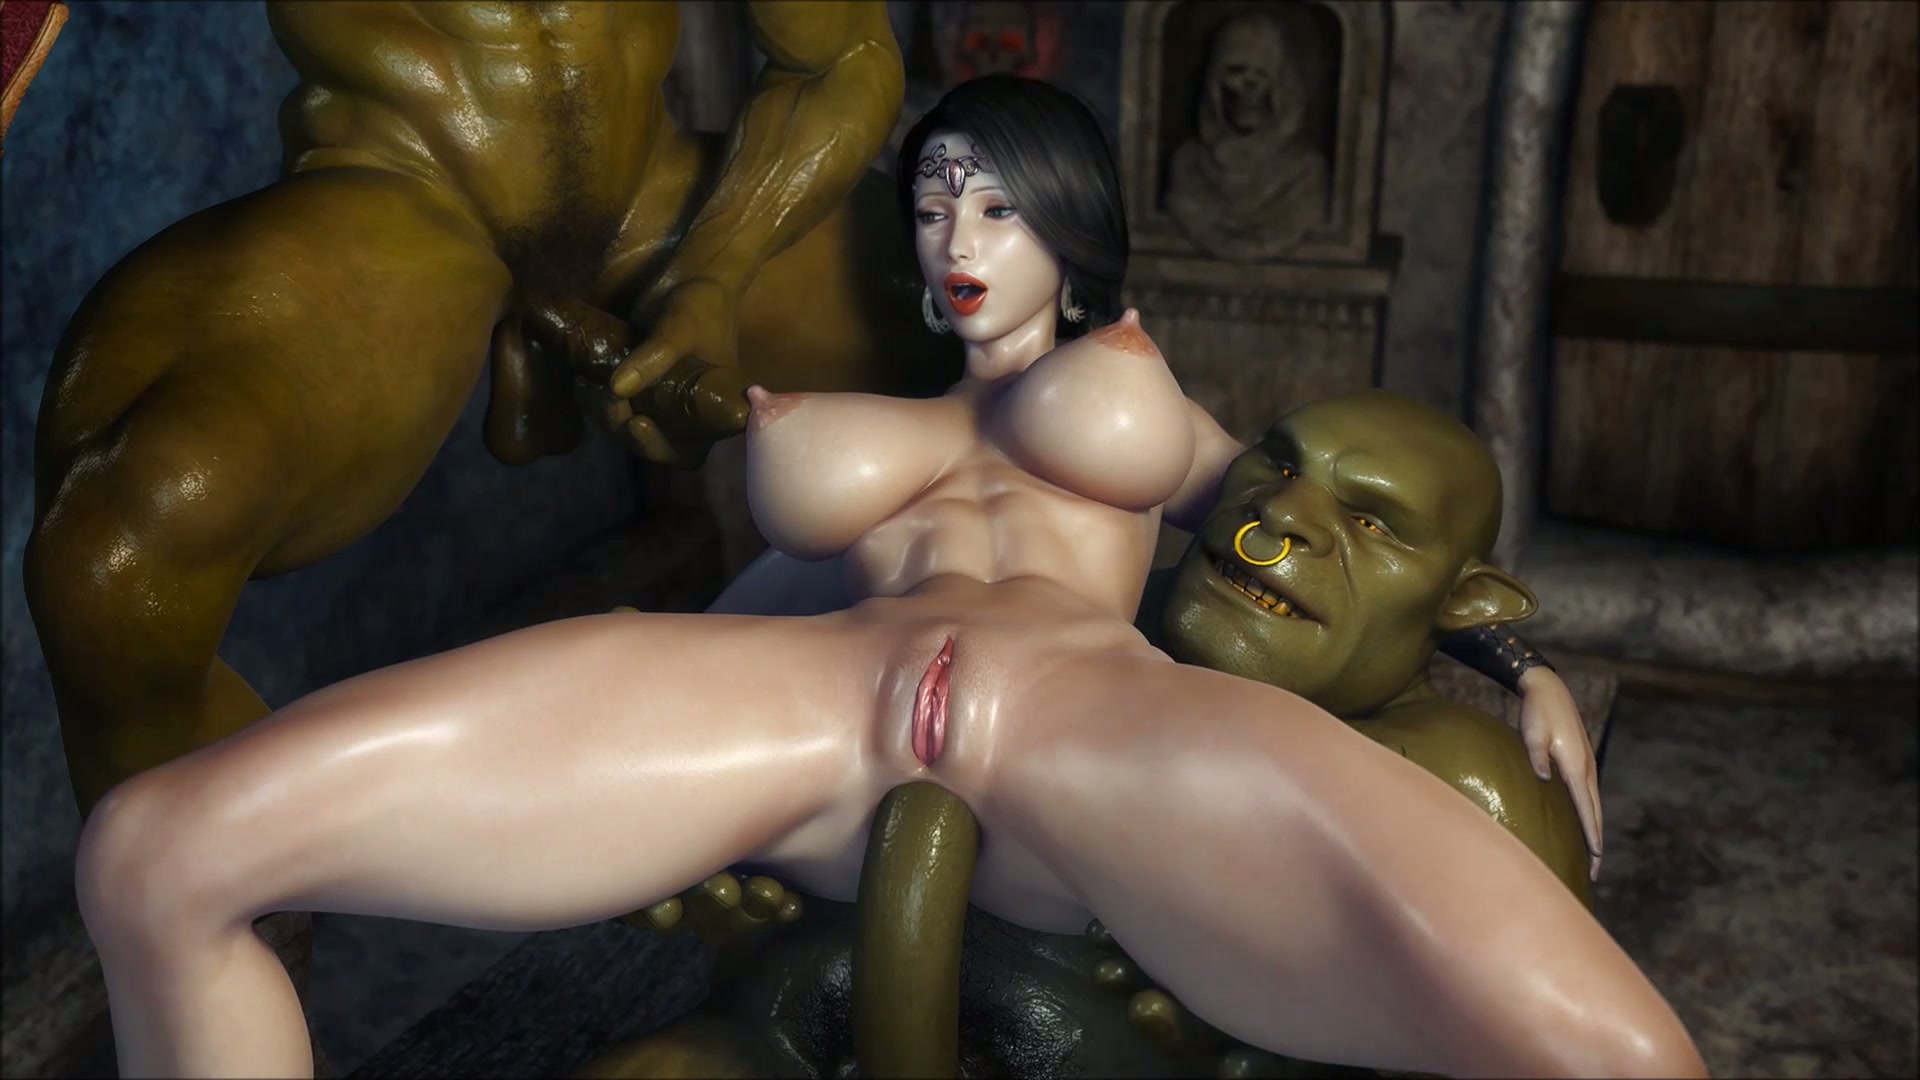 Hentai monster fucking pictures pron scene